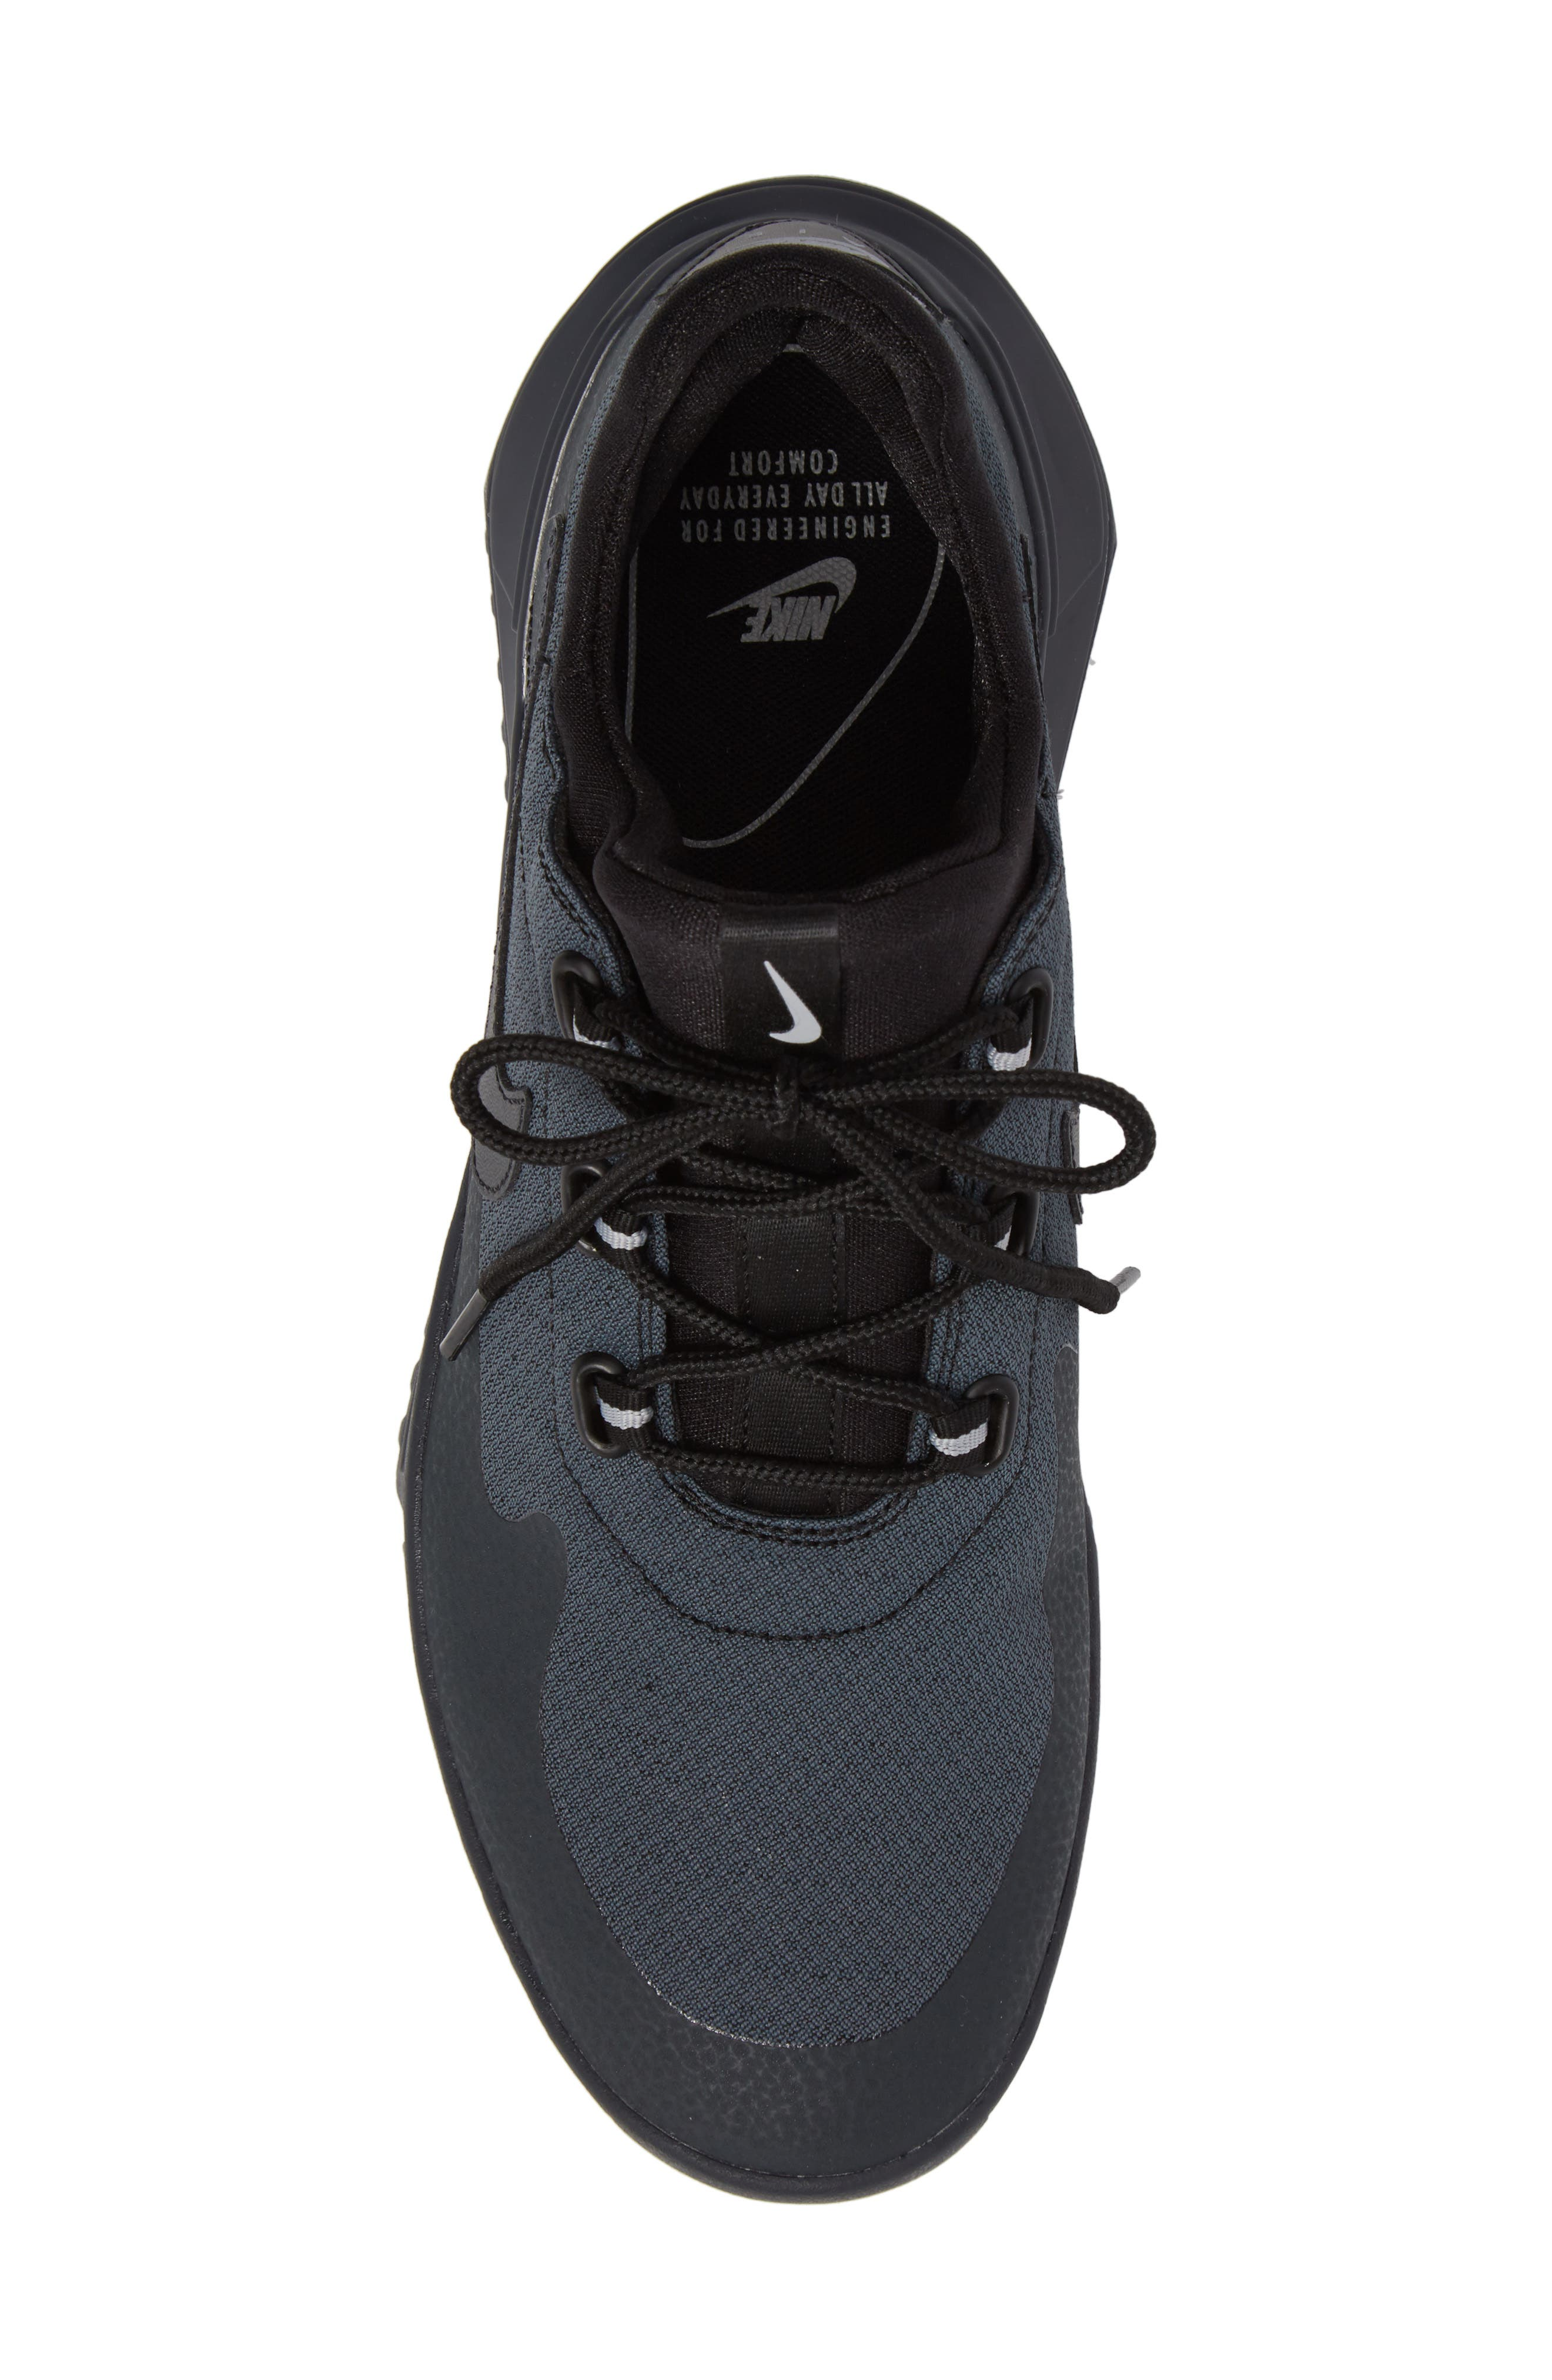 Air Wild Sneaker,                             Alternate thumbnail 5, color,                             Black/ Anthracite/ Grey